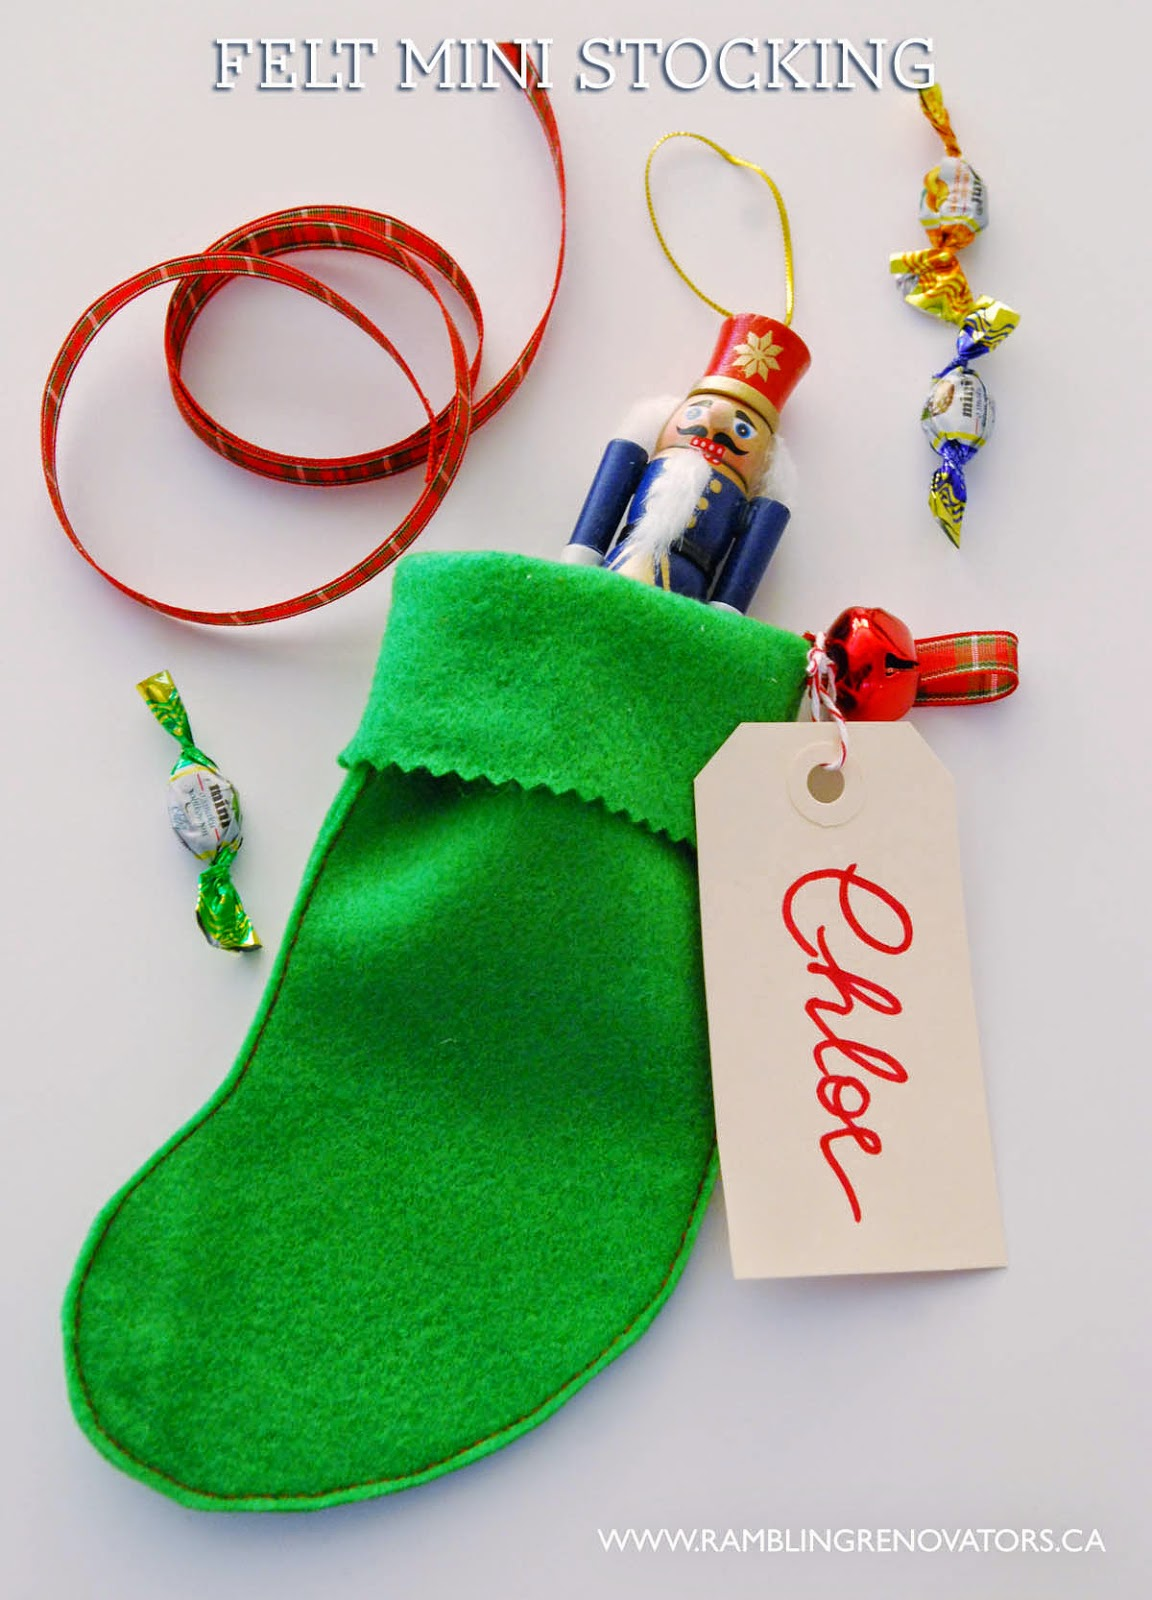 felt mini stocking goodie bag for classmate gifts